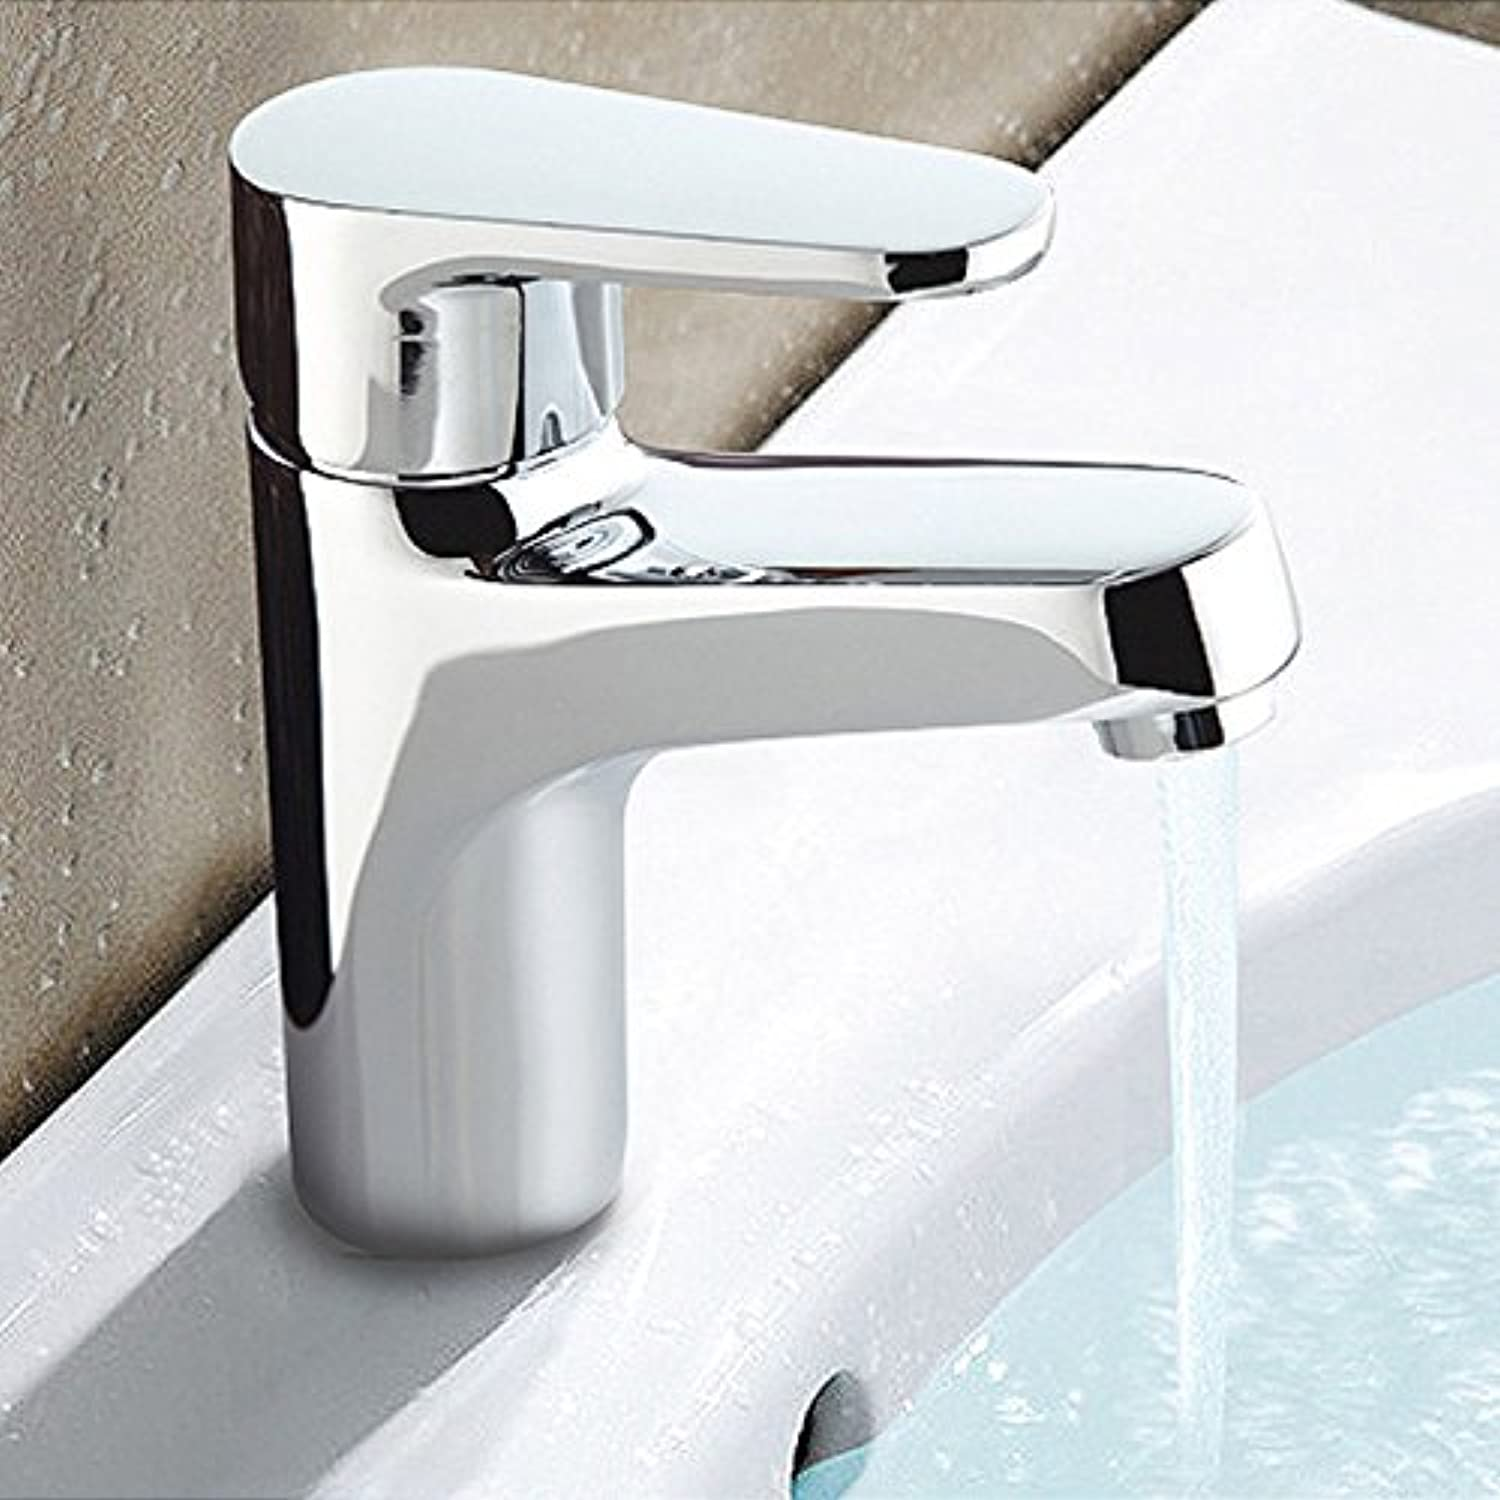 Bathroom Sink Basin Lever Mixer Tap Cold and Hot Water Basin Faucet Cold and Hot Water Basin Faucet